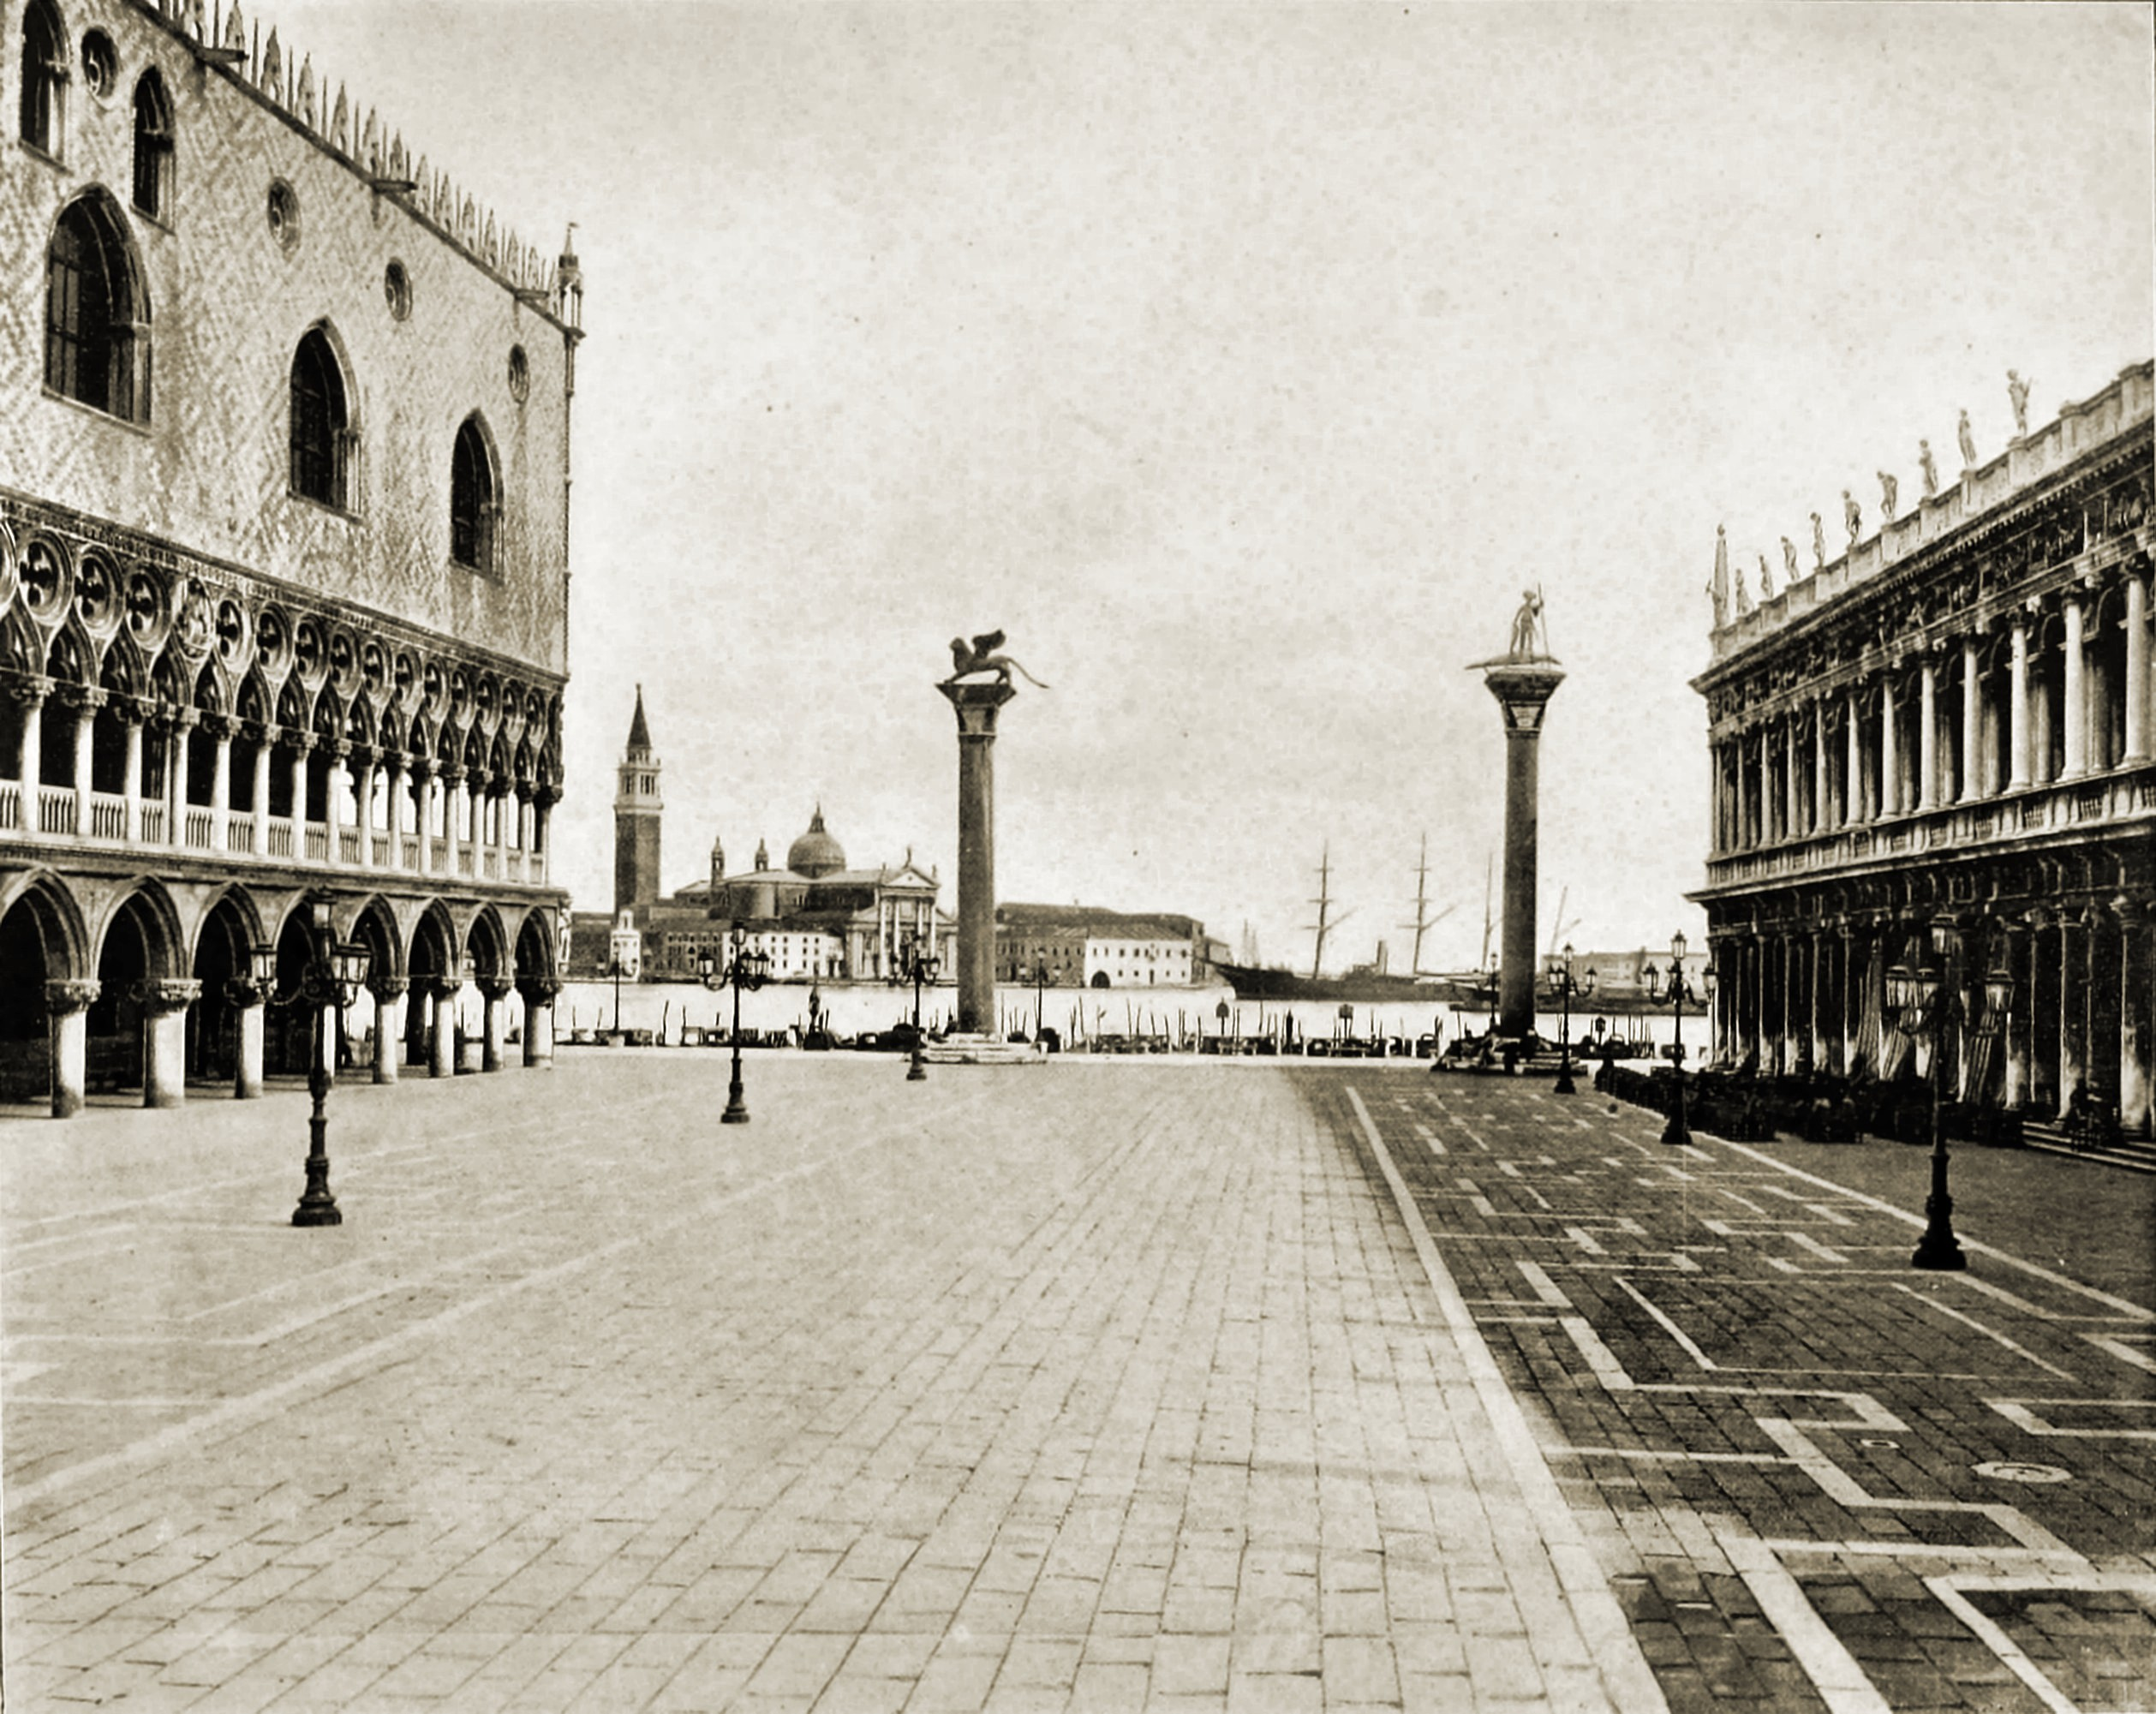 Piazzetta San Marco Venice Italy about 1892